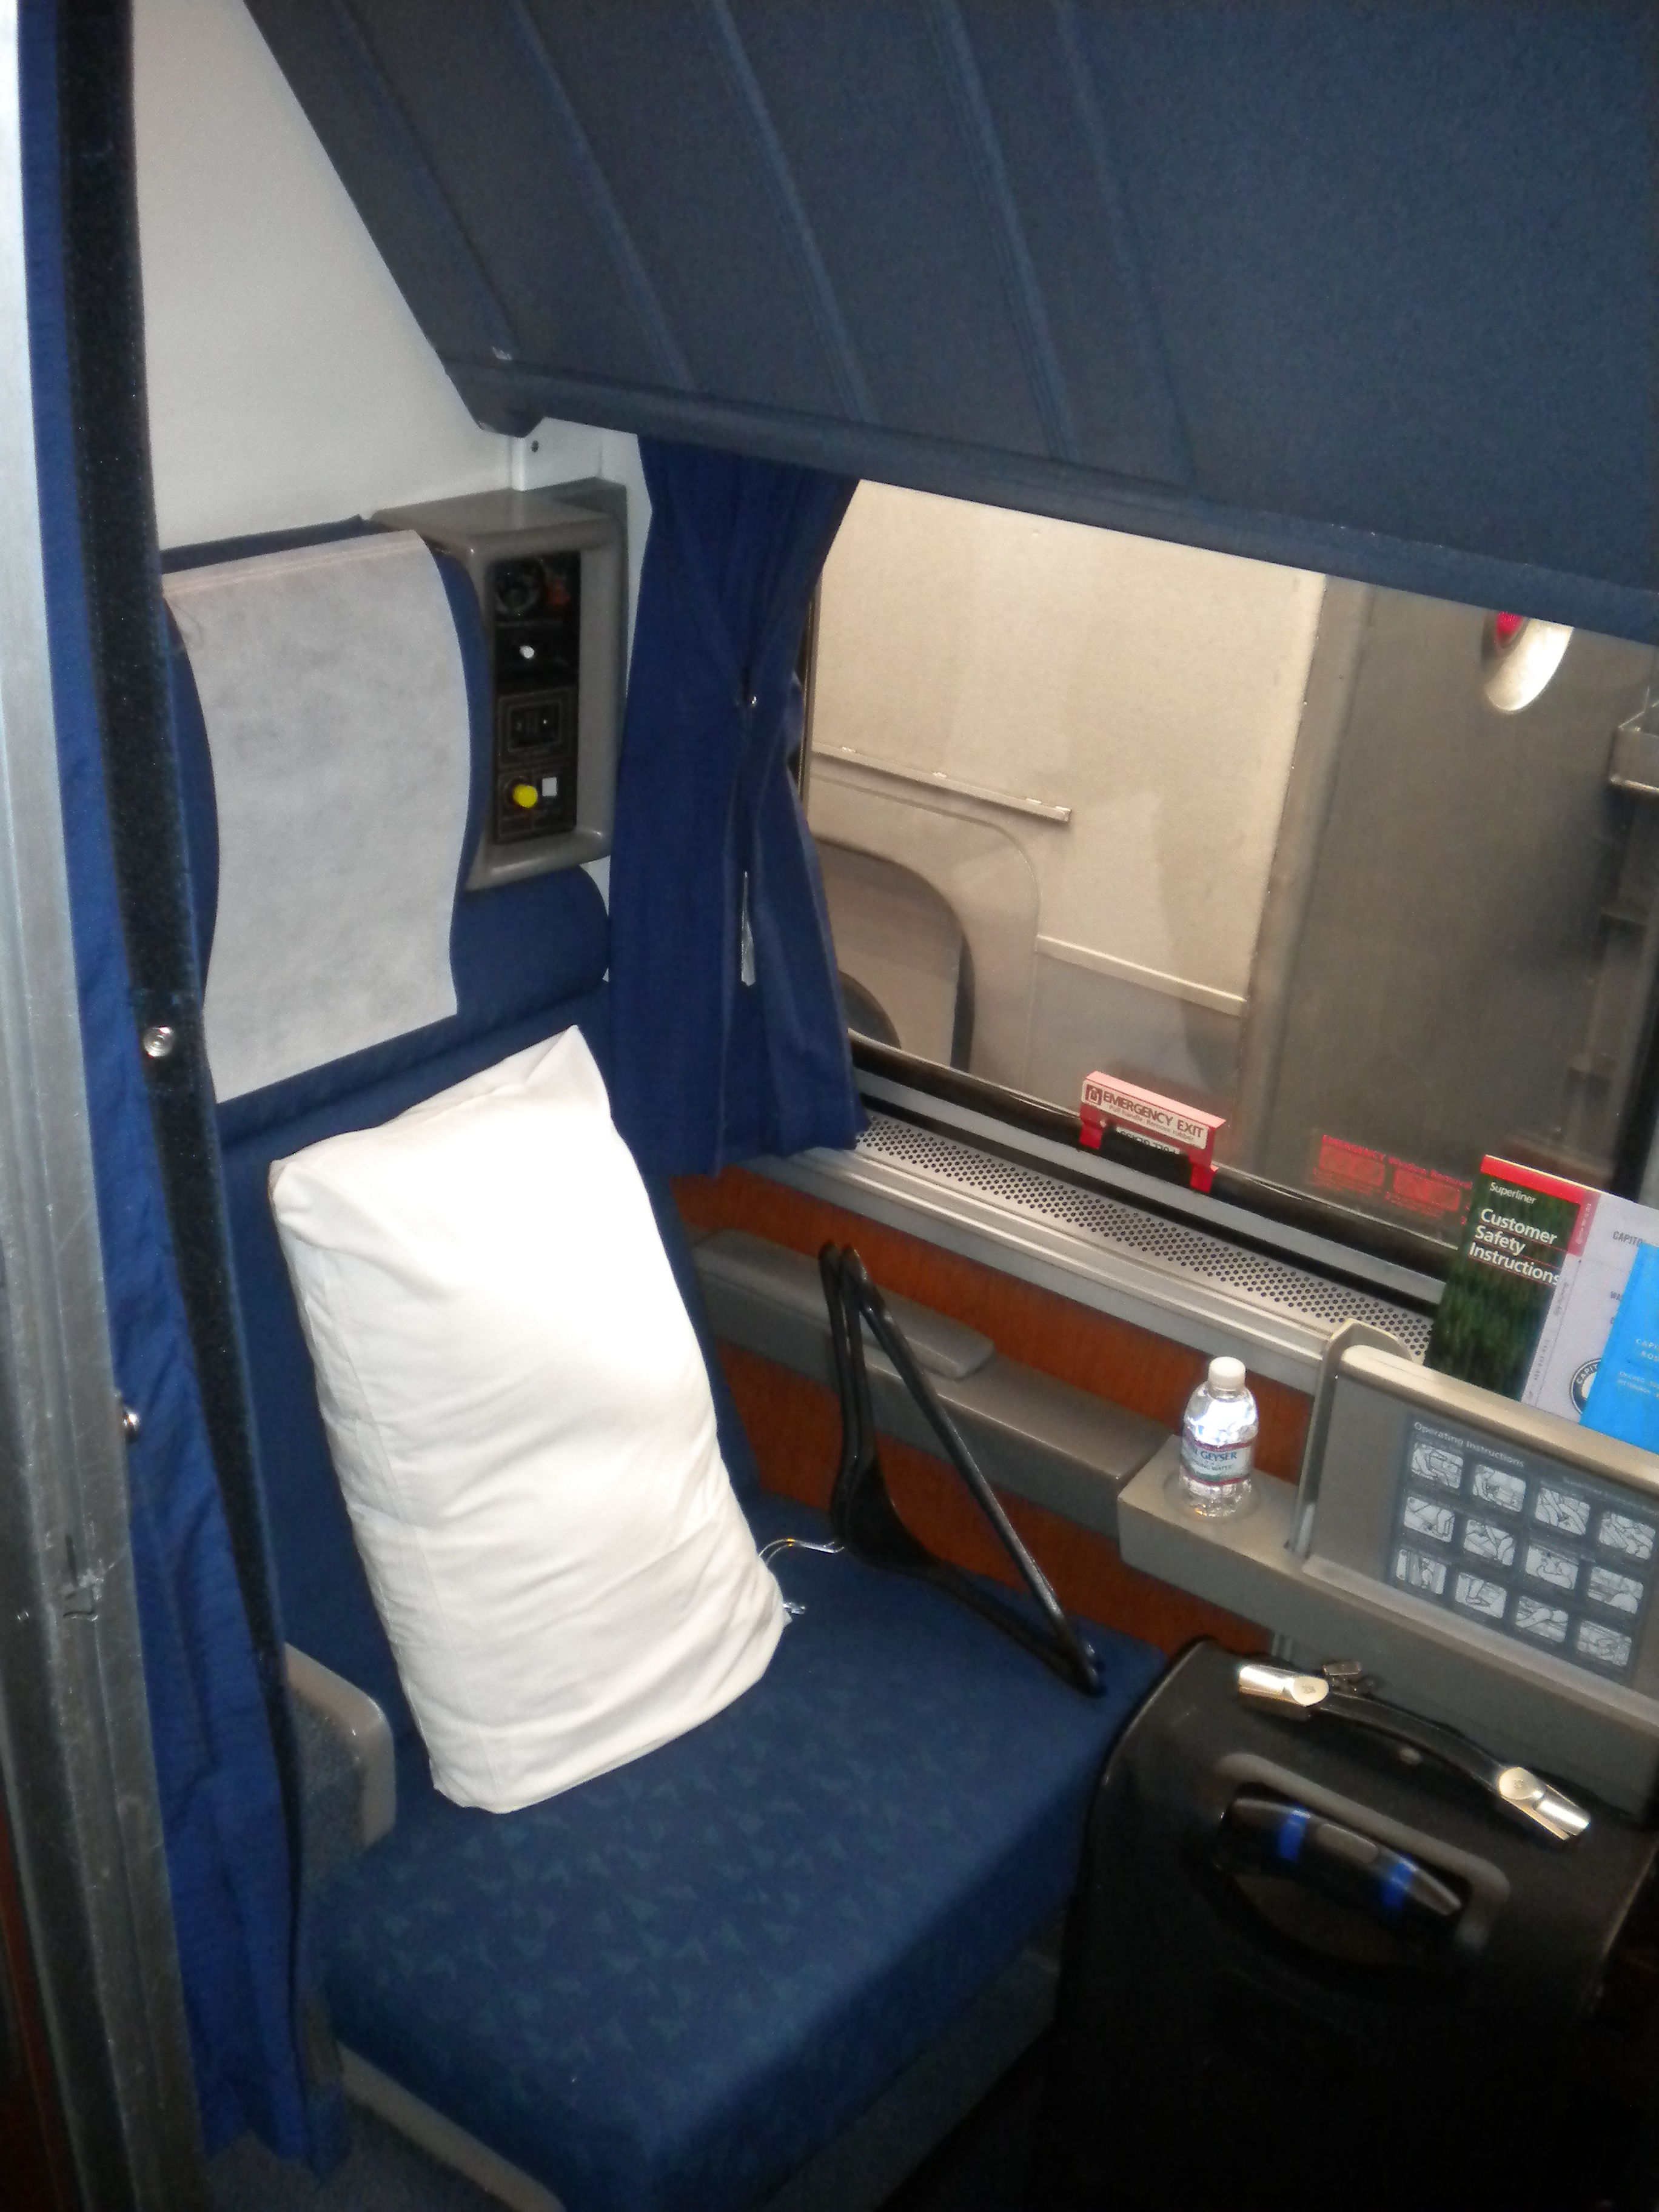 amtrak across the country introduction superliner roomette left side